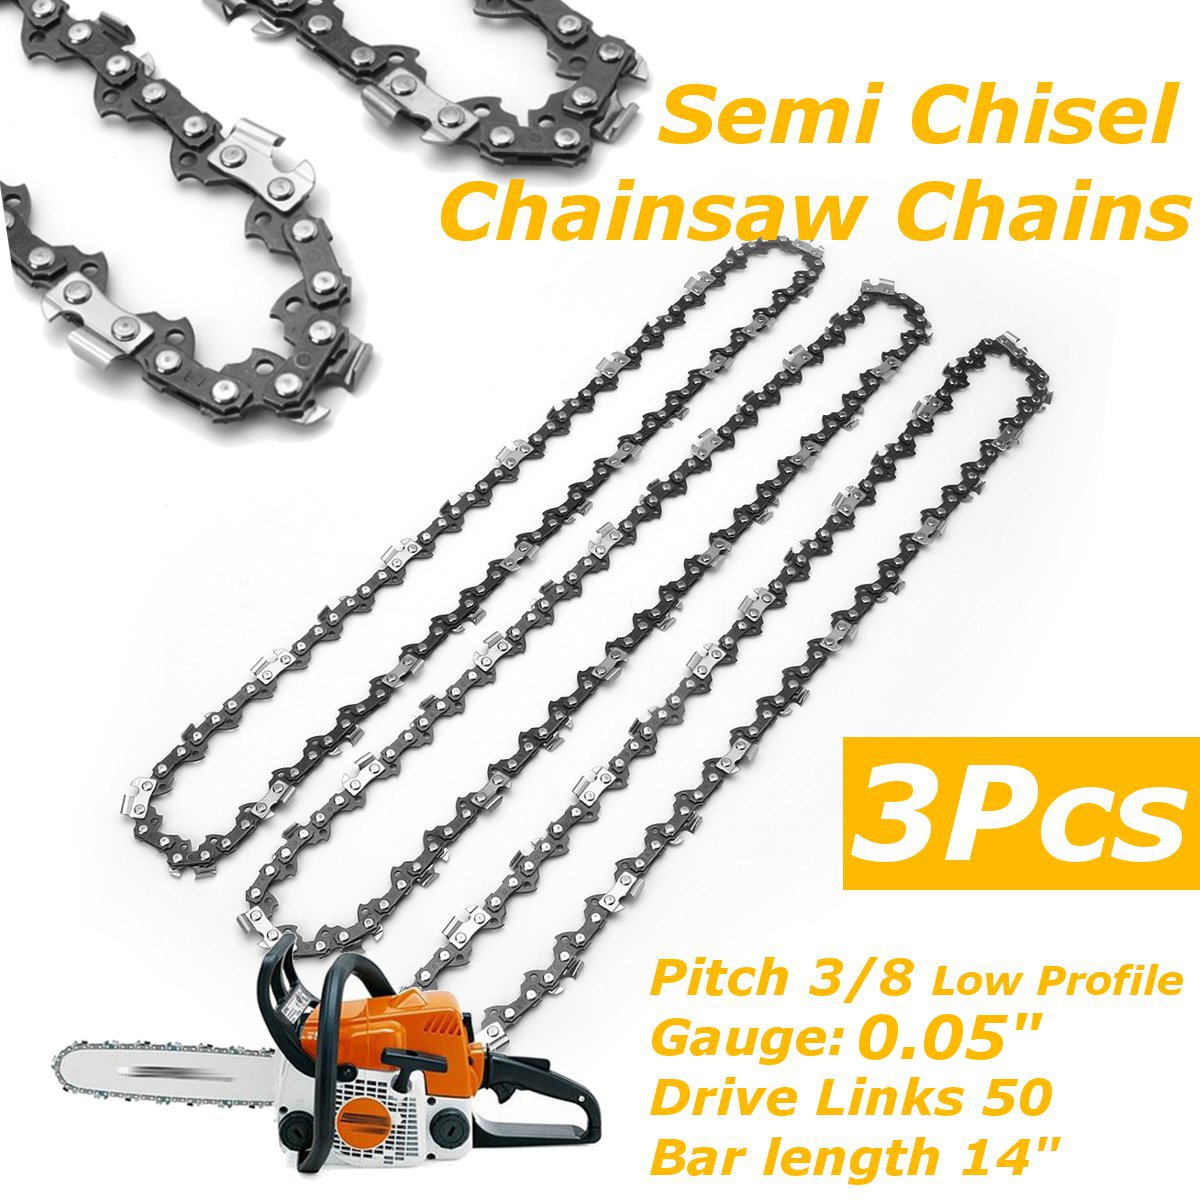 3pcs/set Chainsaw Semi Chisel Chains 3/8LP 0.05 For Stihl MS170 MS171 MS180 MS181 Electric Saw Garden Power Tools Chainsaws image